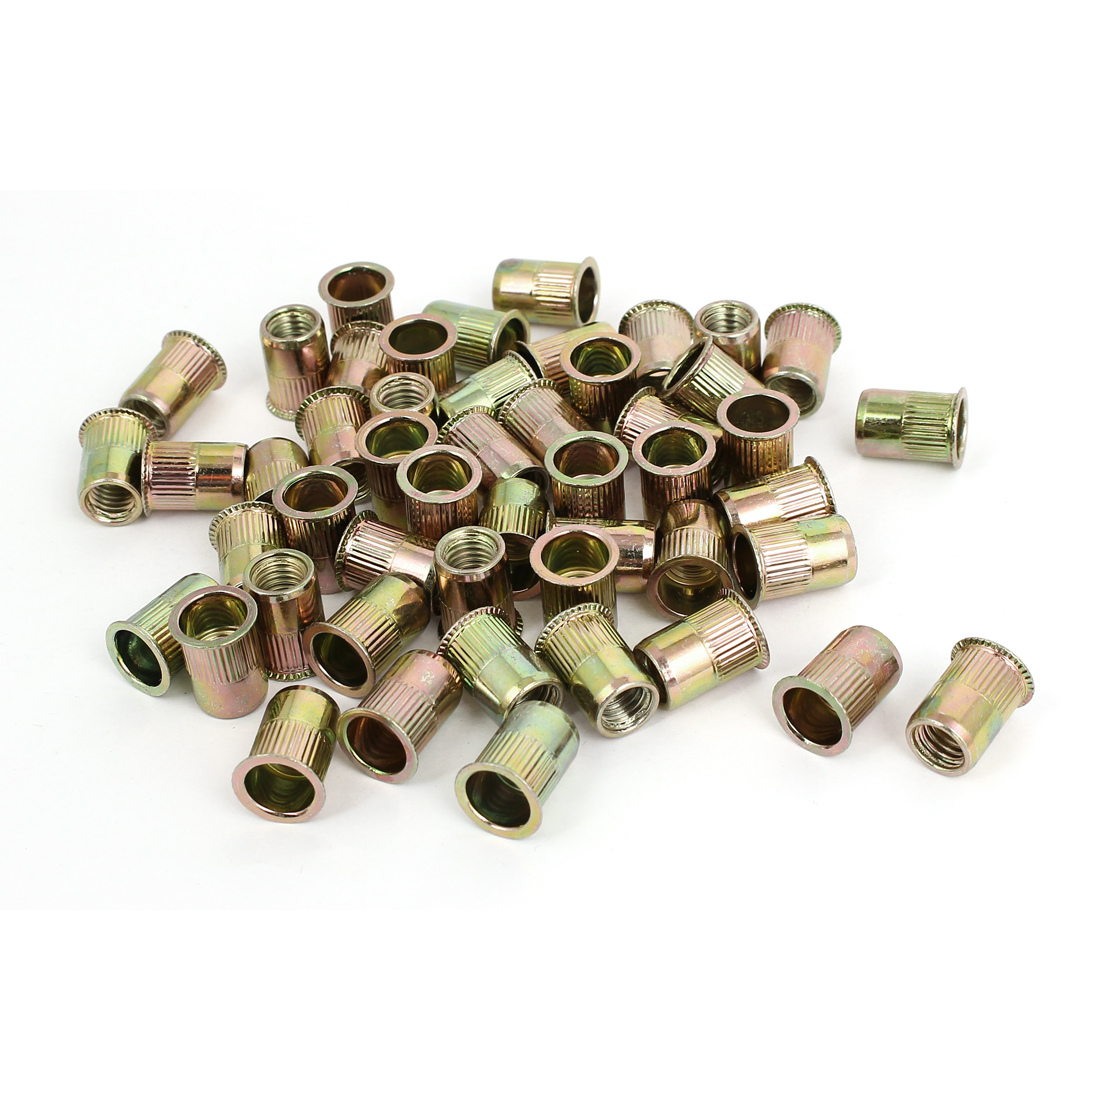 M8 Thread 16mm Long Rivet Nut Insert Nutsert 50pcs